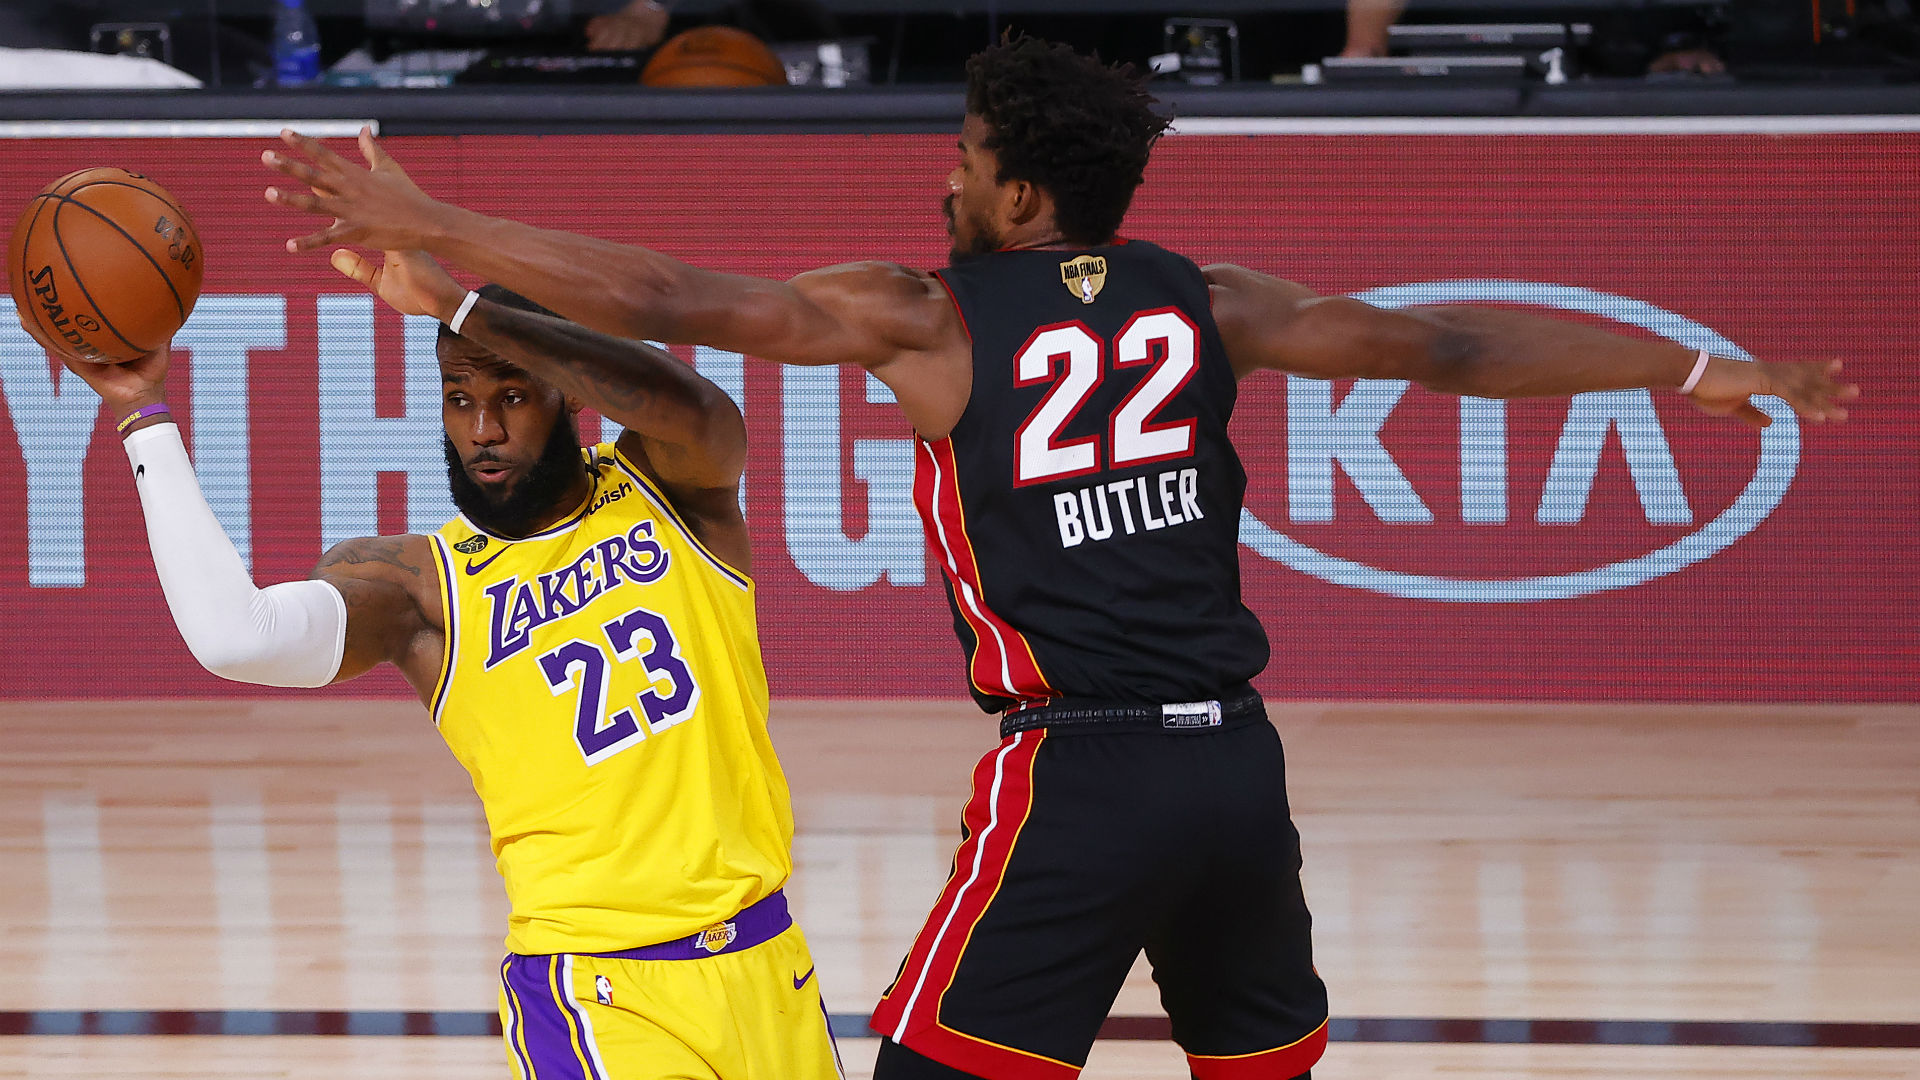 Lakers vs. Heat live score, updates, highlights from Game 2 of the 2020 NBA Finals